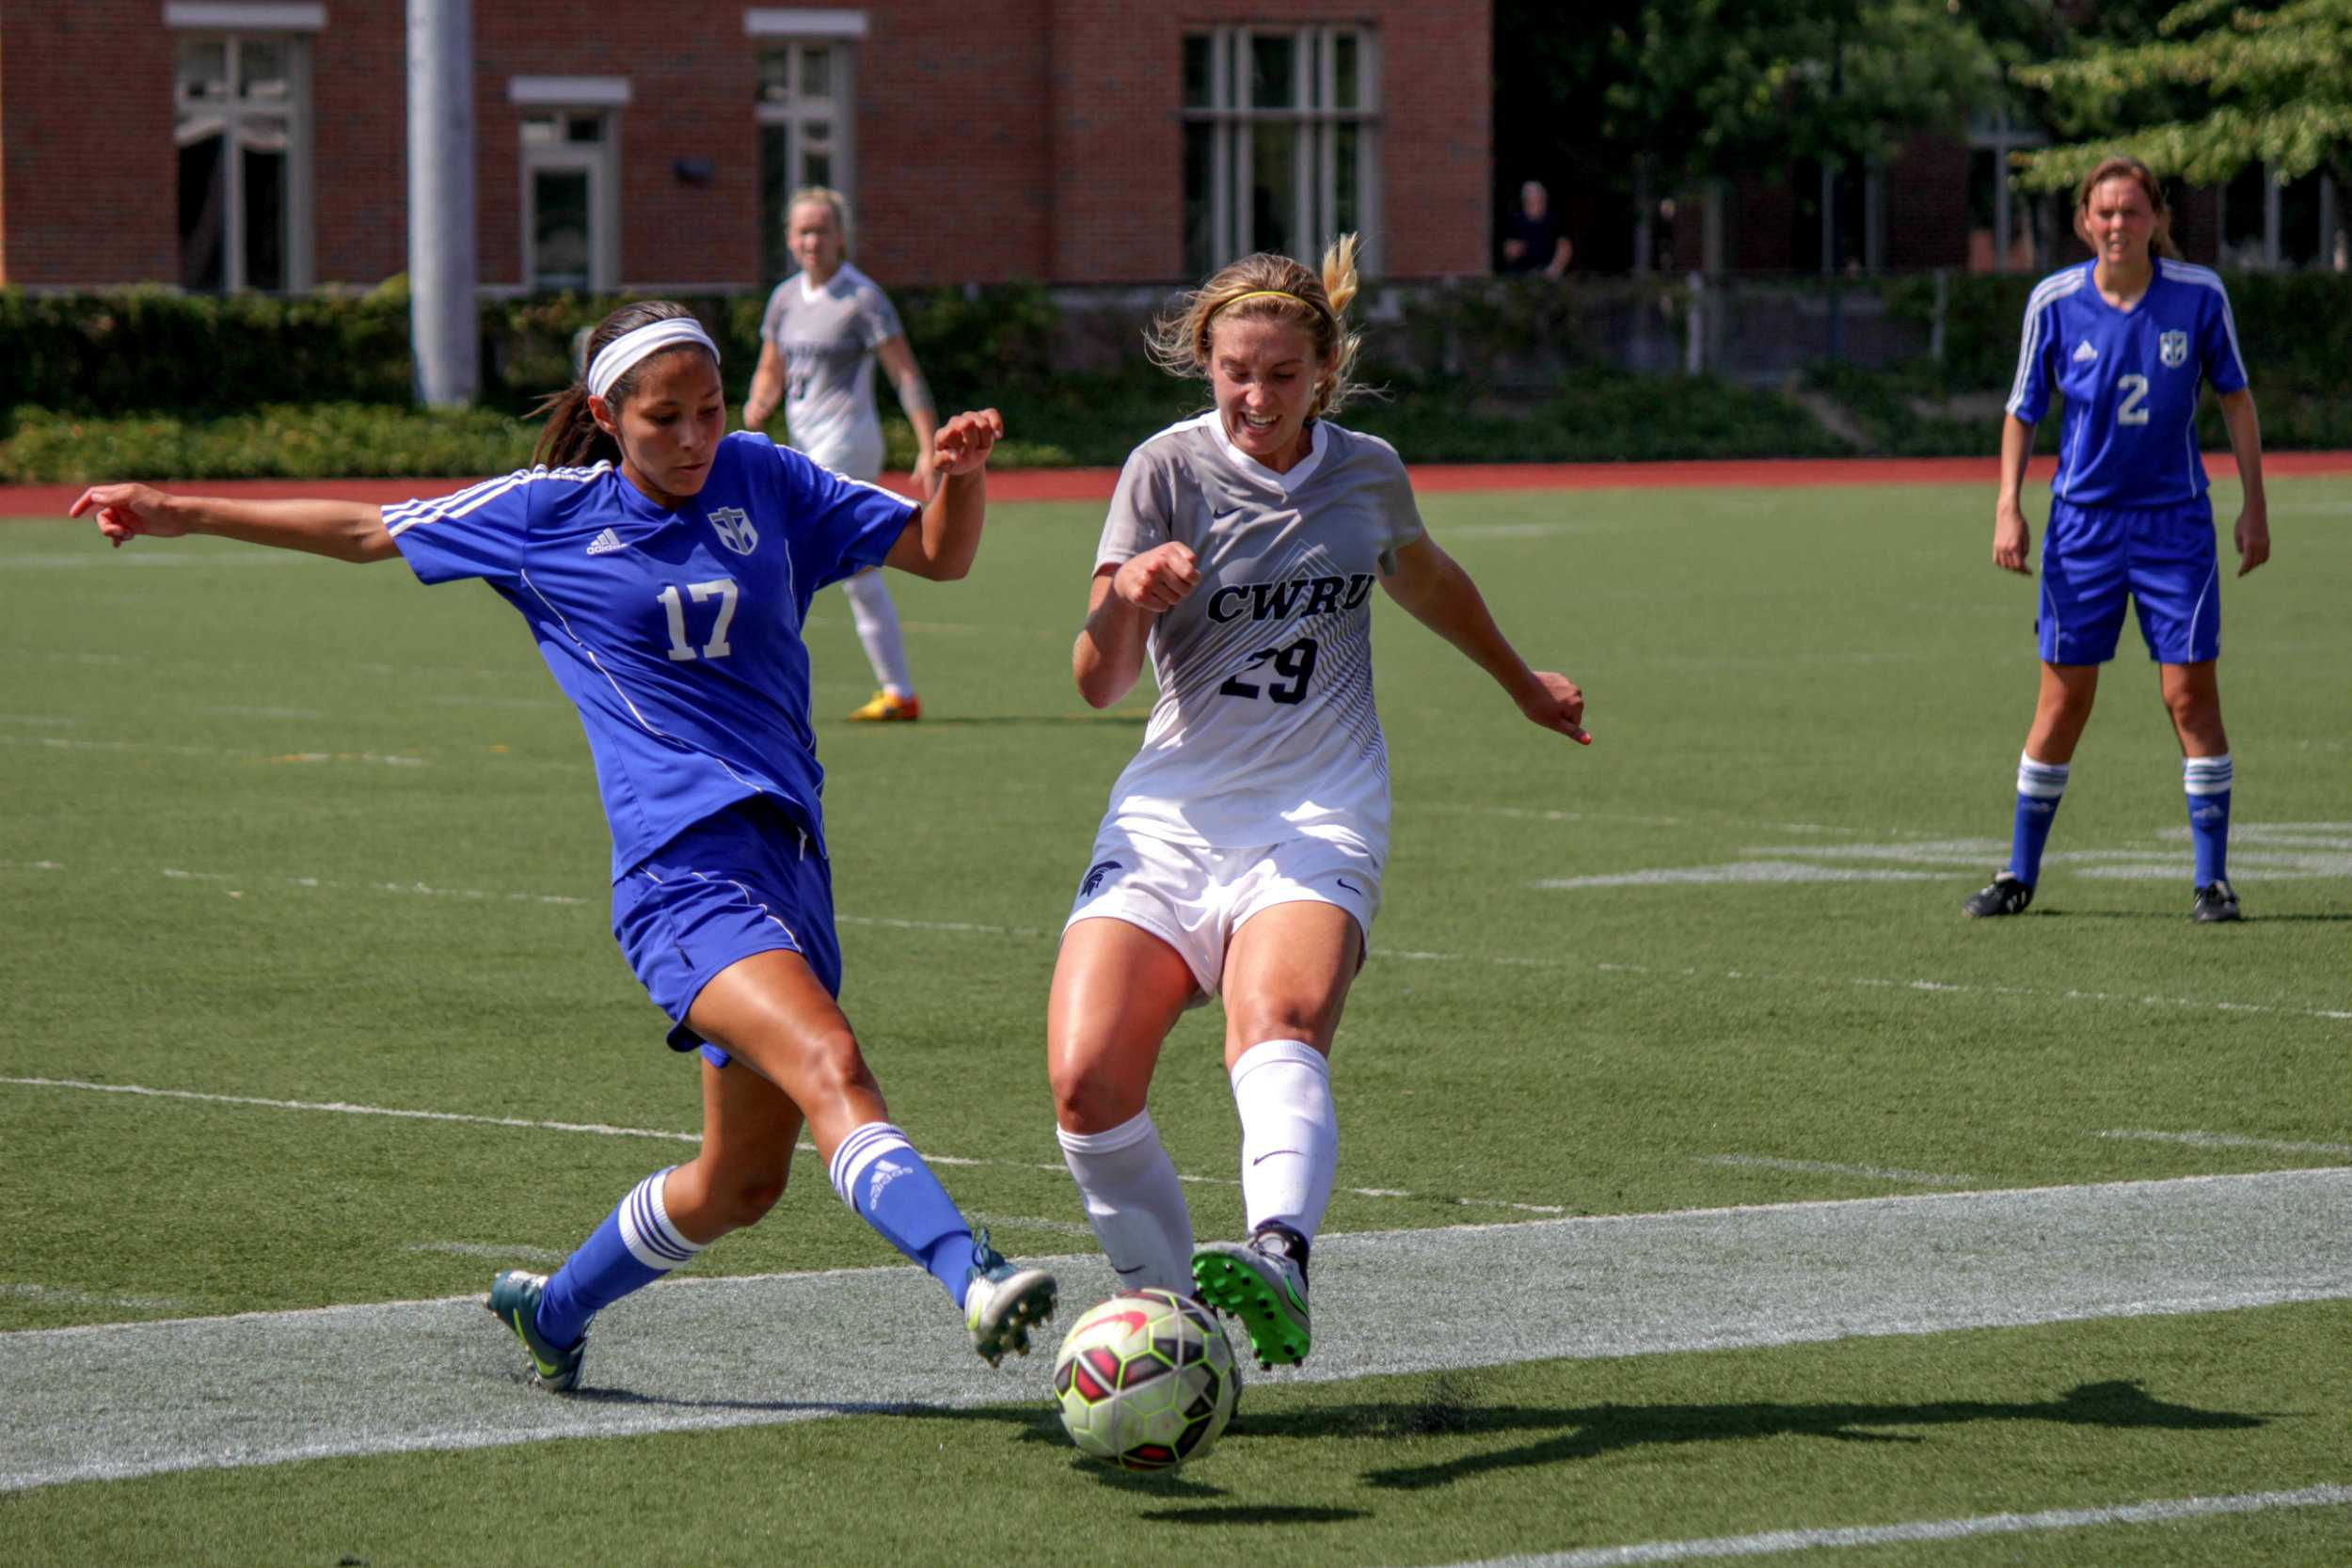 CWRU defender Elle Zadina fights for possession against a Thomas More forward. The Spartans battled the  #8 Saints to a scoreless draw this weekend.